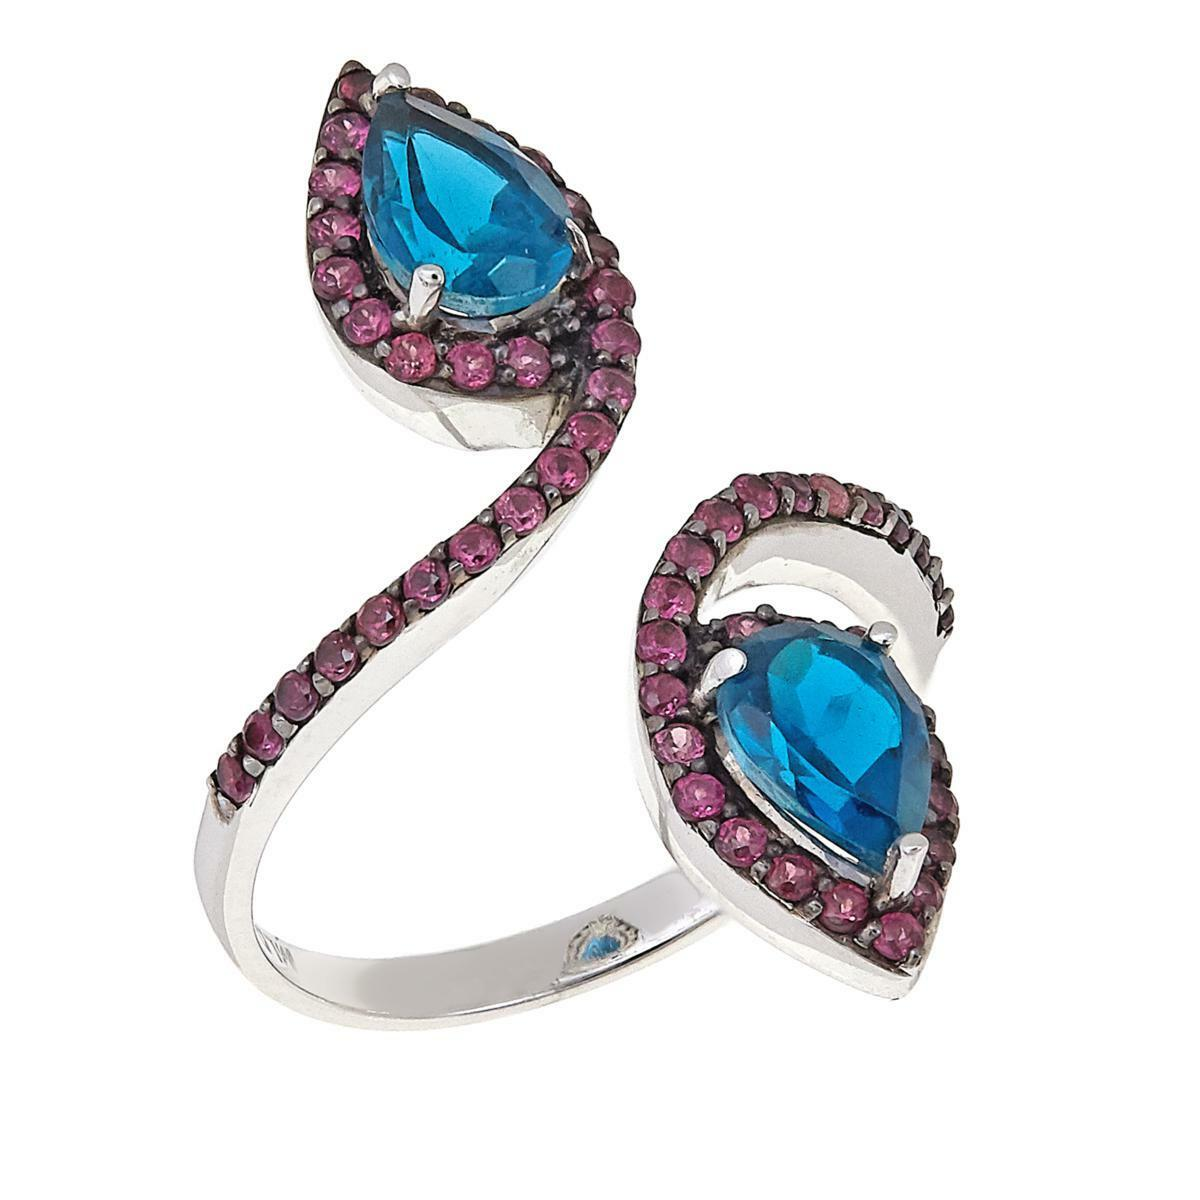 RARITIES 2.04CT blueE TOPAZ & RHODOLITE STERLING OPEN-WRAP RING SIZE 10 HSN  119